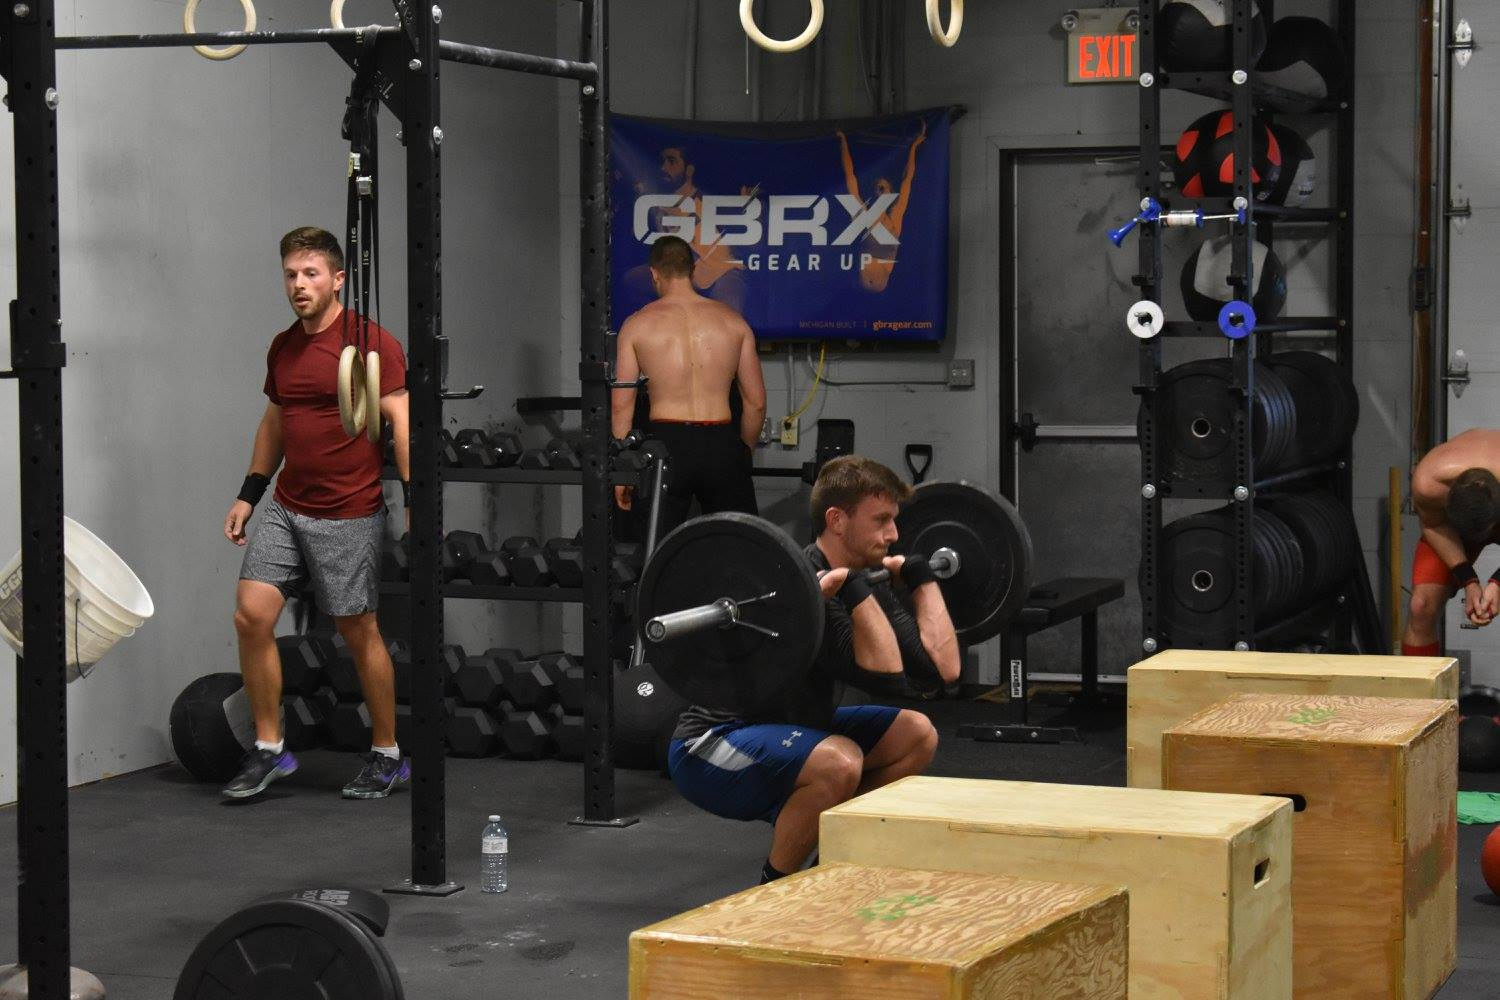 It is always good to review the basic points of performance. Check out the quick video on putting together the Hang Clean with the Push Jerk:   Hang Clean and Push Jerk